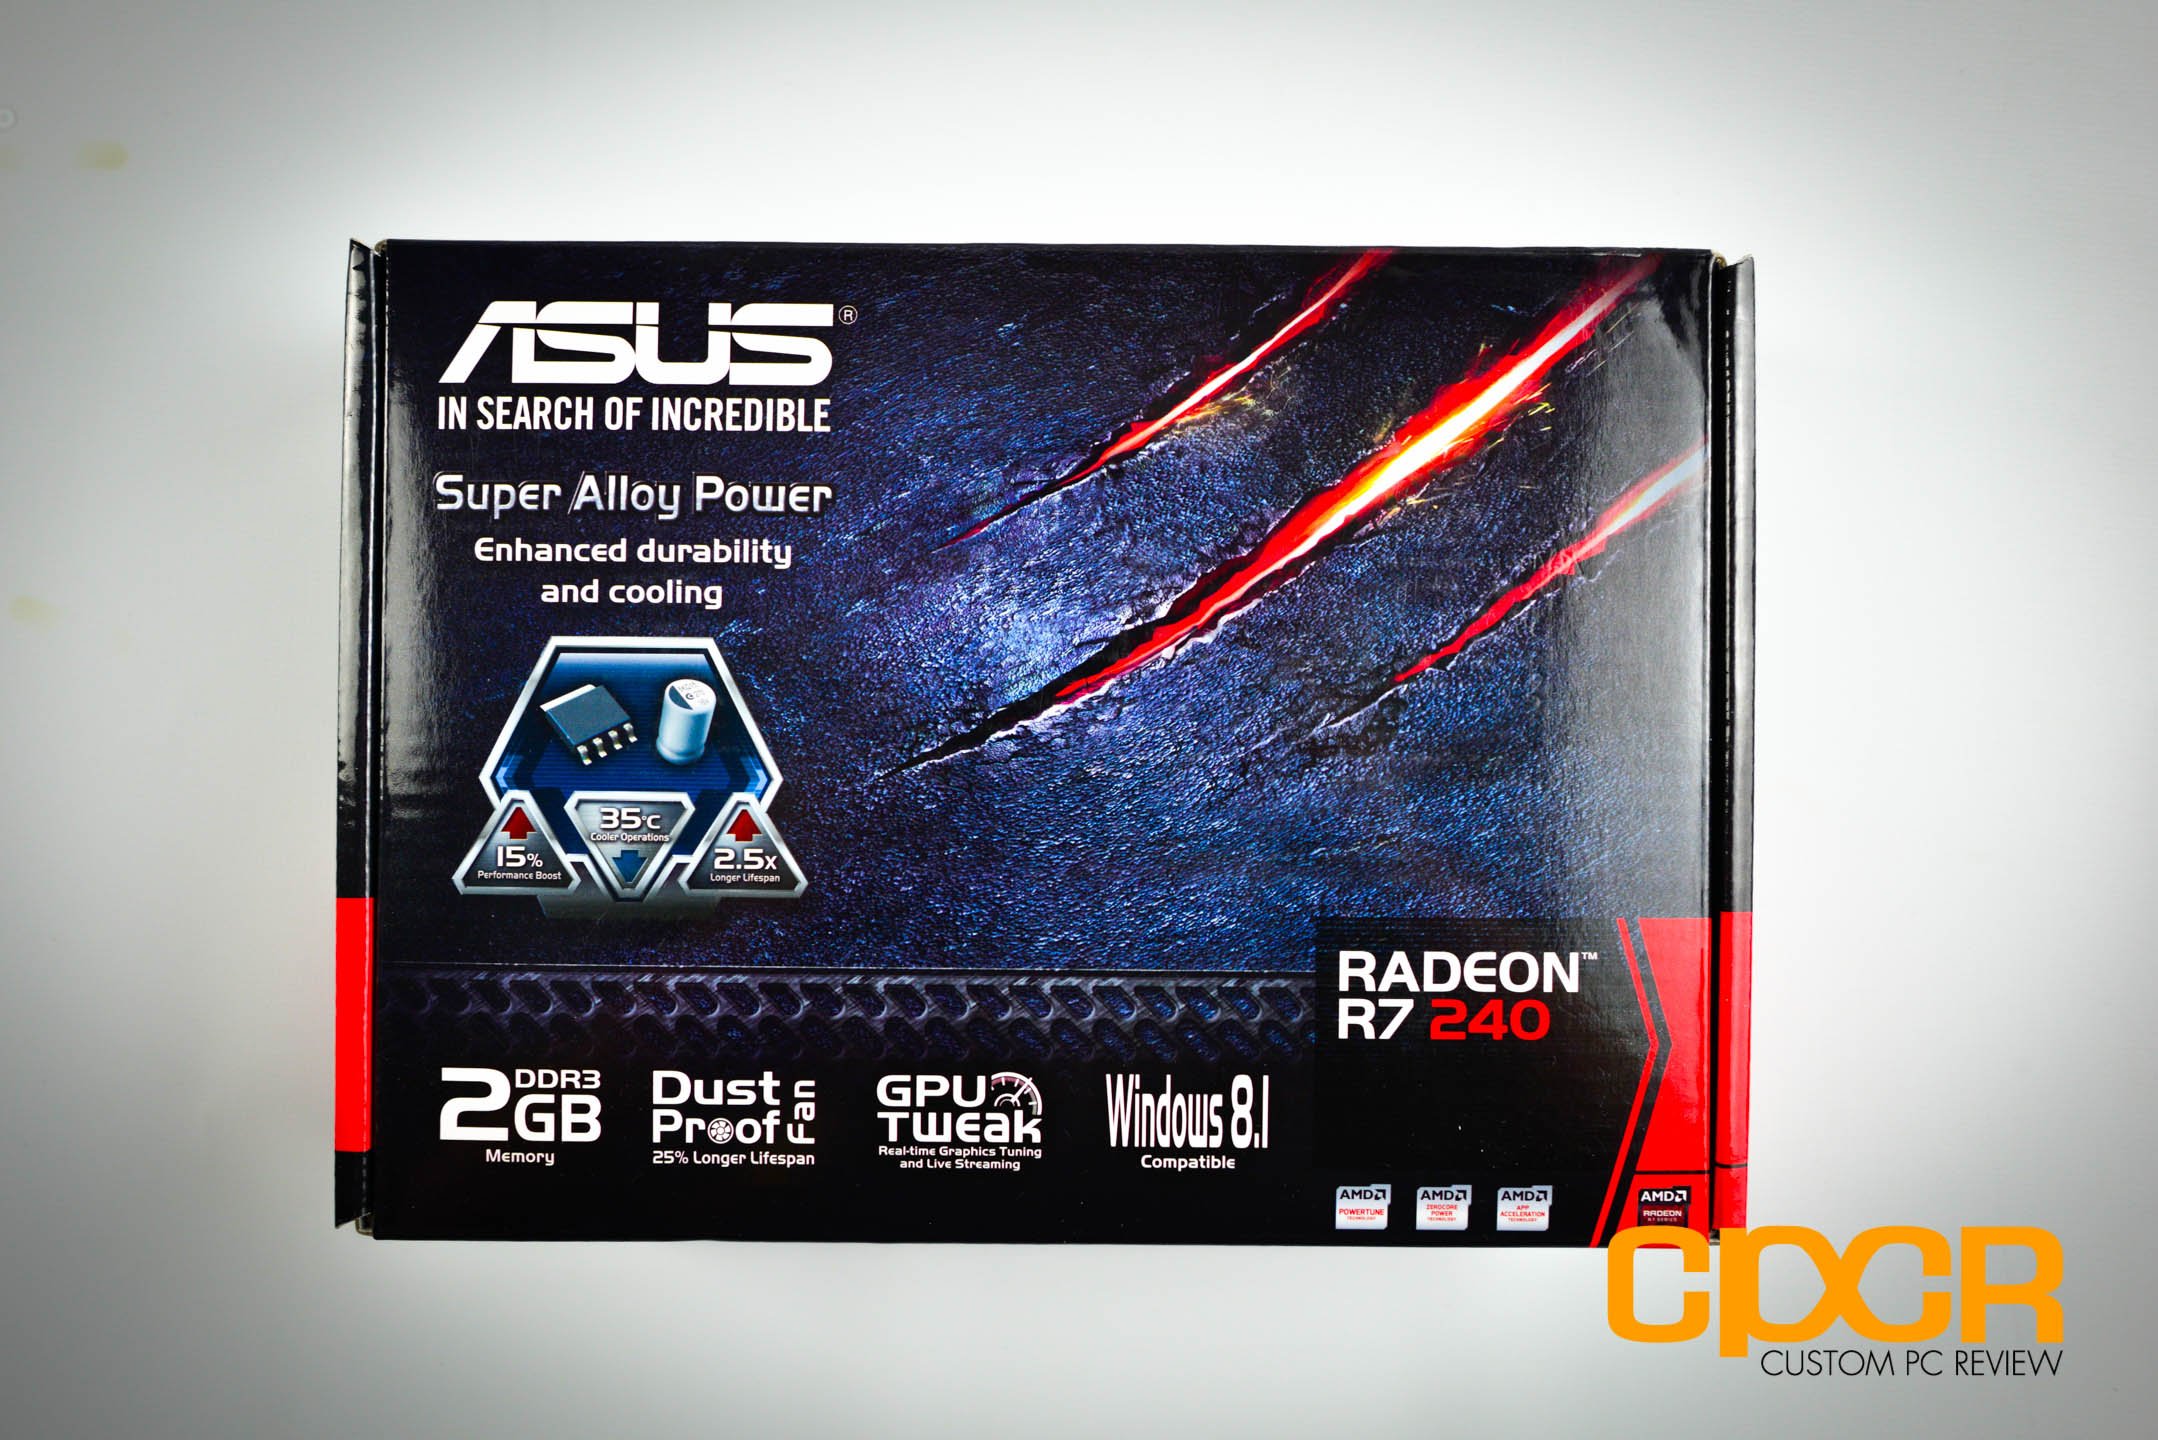 ASUS Radeon R7 240, R7 250 Review | Graphics Card | Custom PC Review